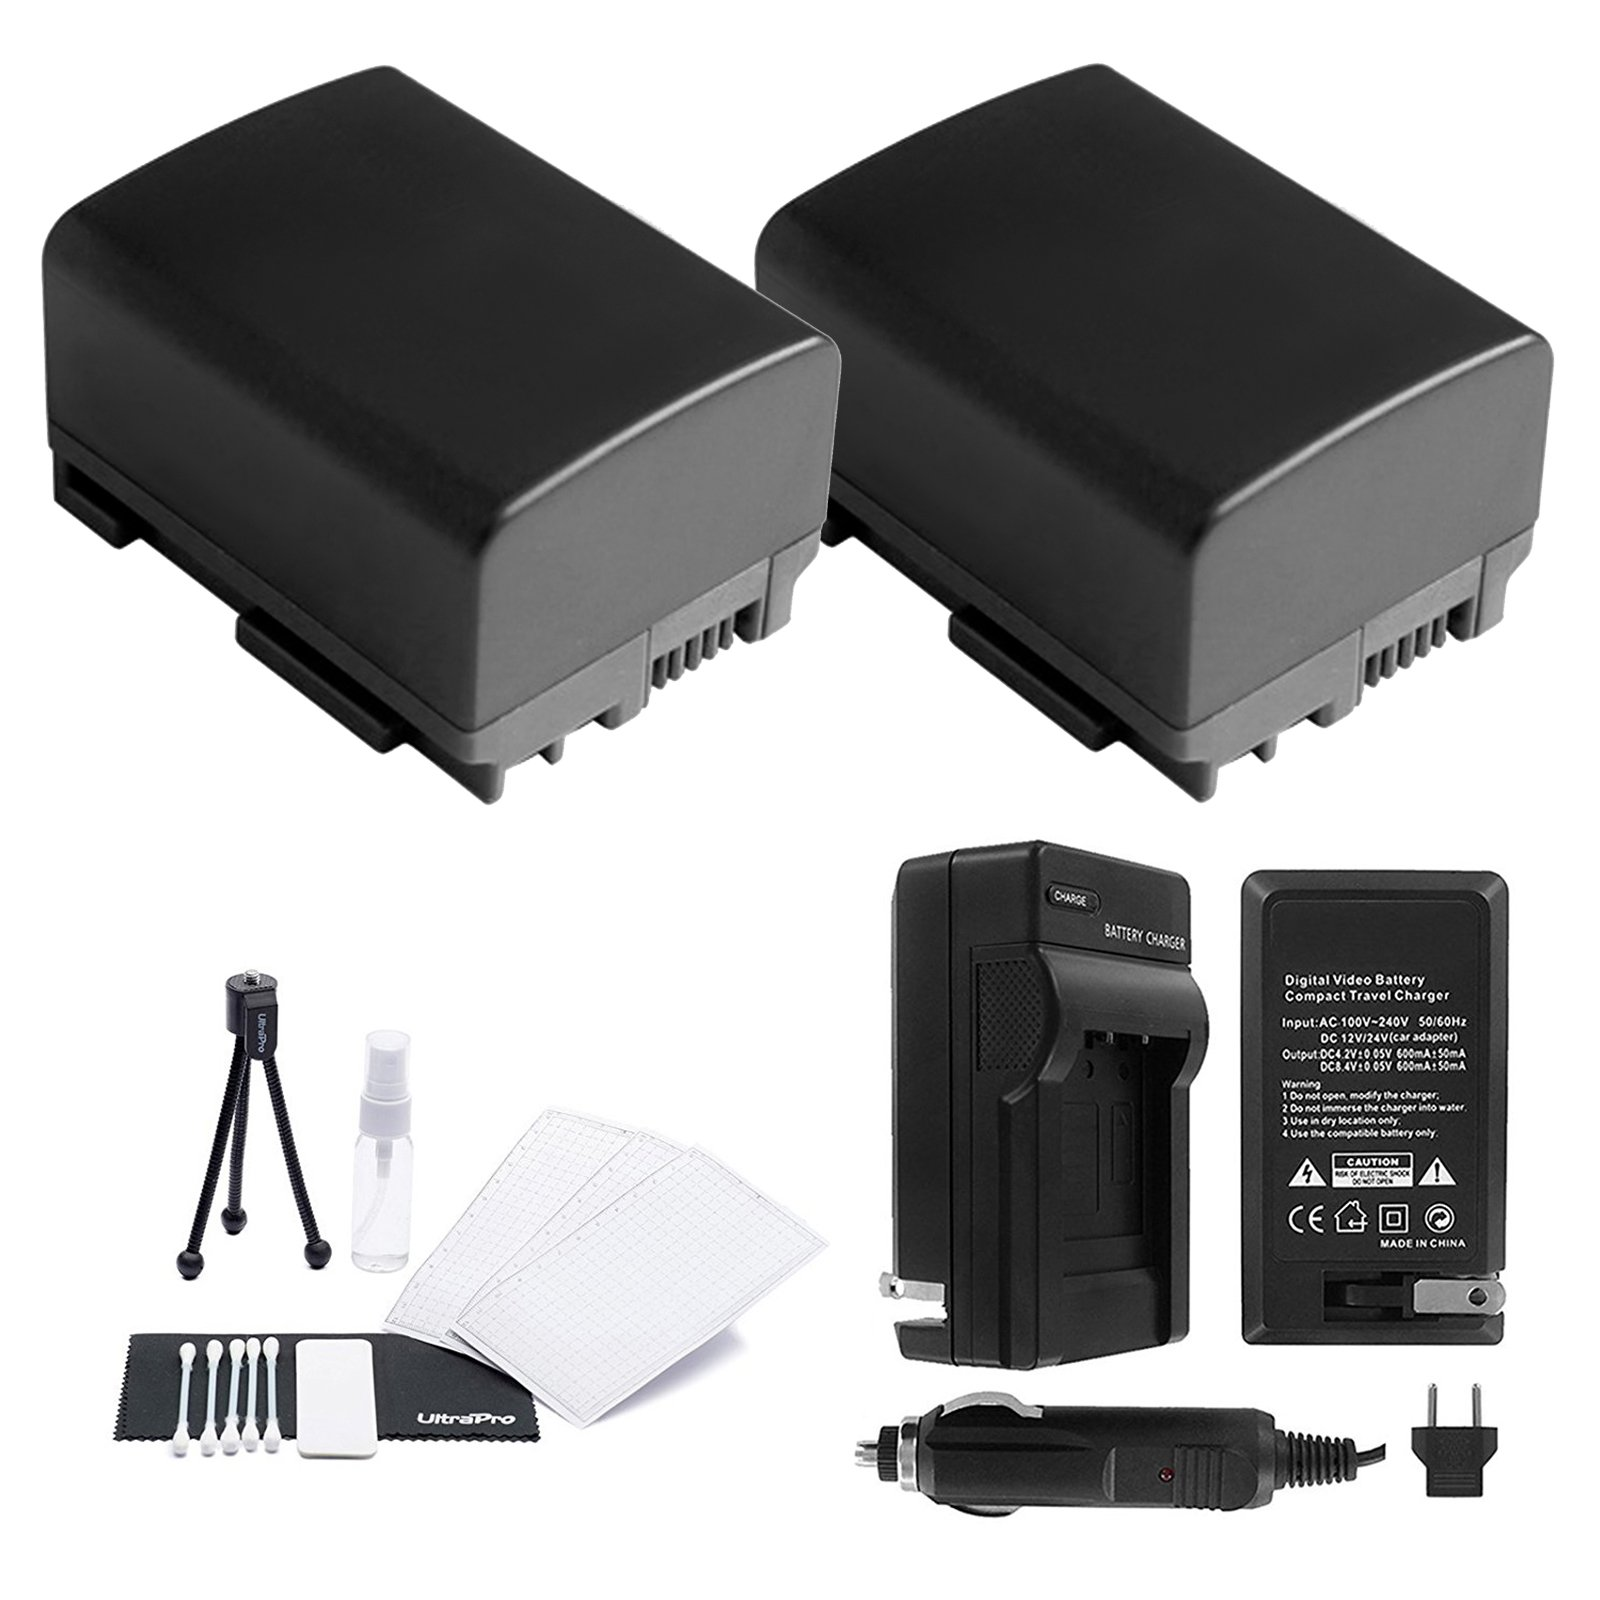 UltraPro BP-808/809 Battery 2-Pack Bundle with Rapid Travel Charger Accessory Kit for Select Canon Cameras Including FS10, FS100, FS11, FS20, FS200, FS21, FS22, FS30, FS300, and FS31 by UltraPro